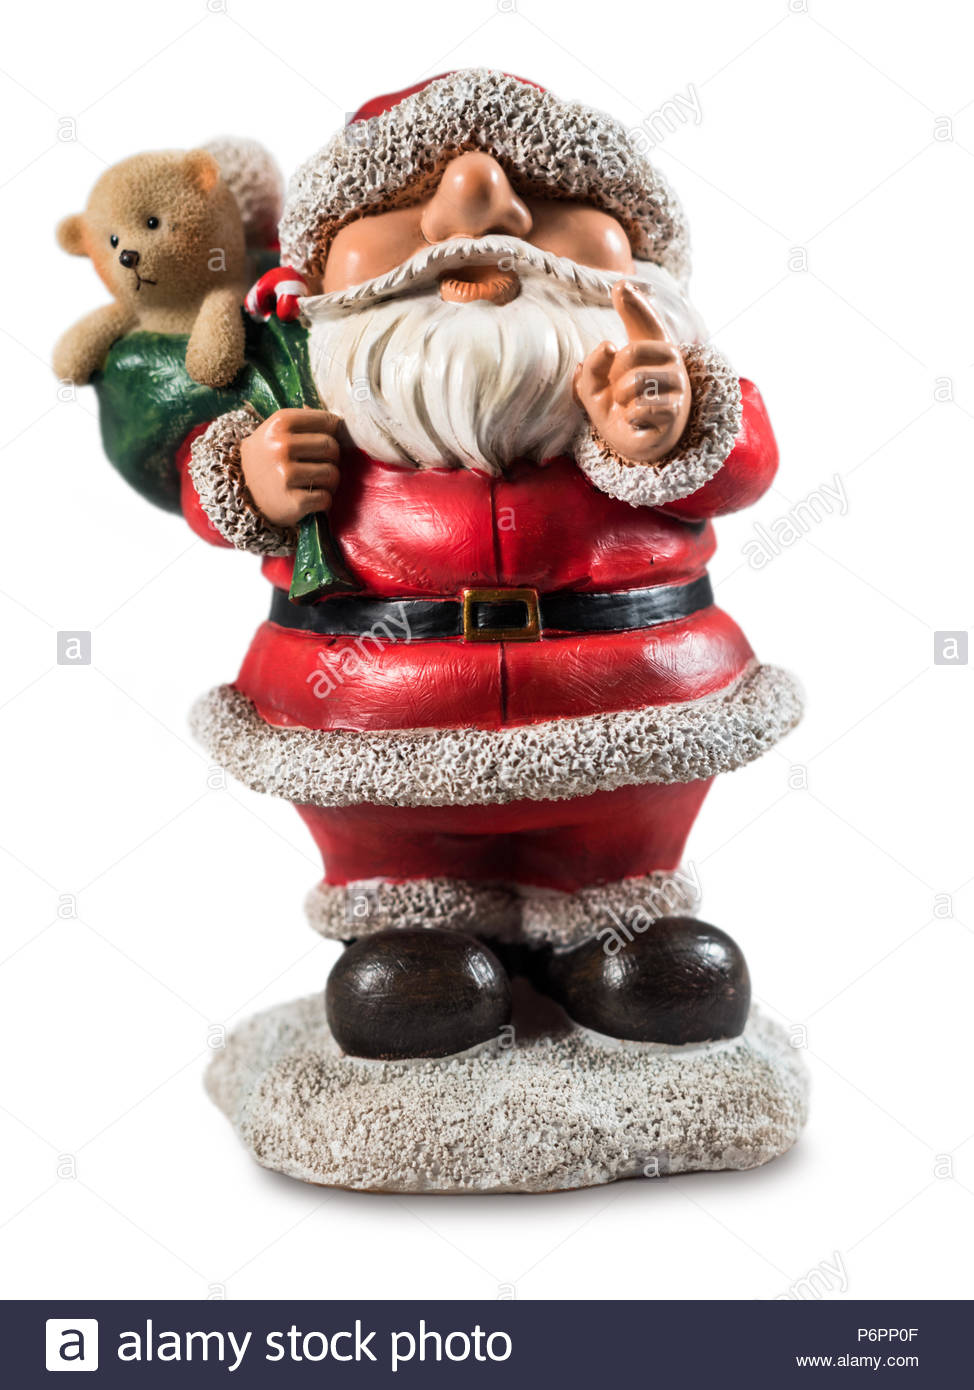 Jolly Father Christmas ornament - Stock Image